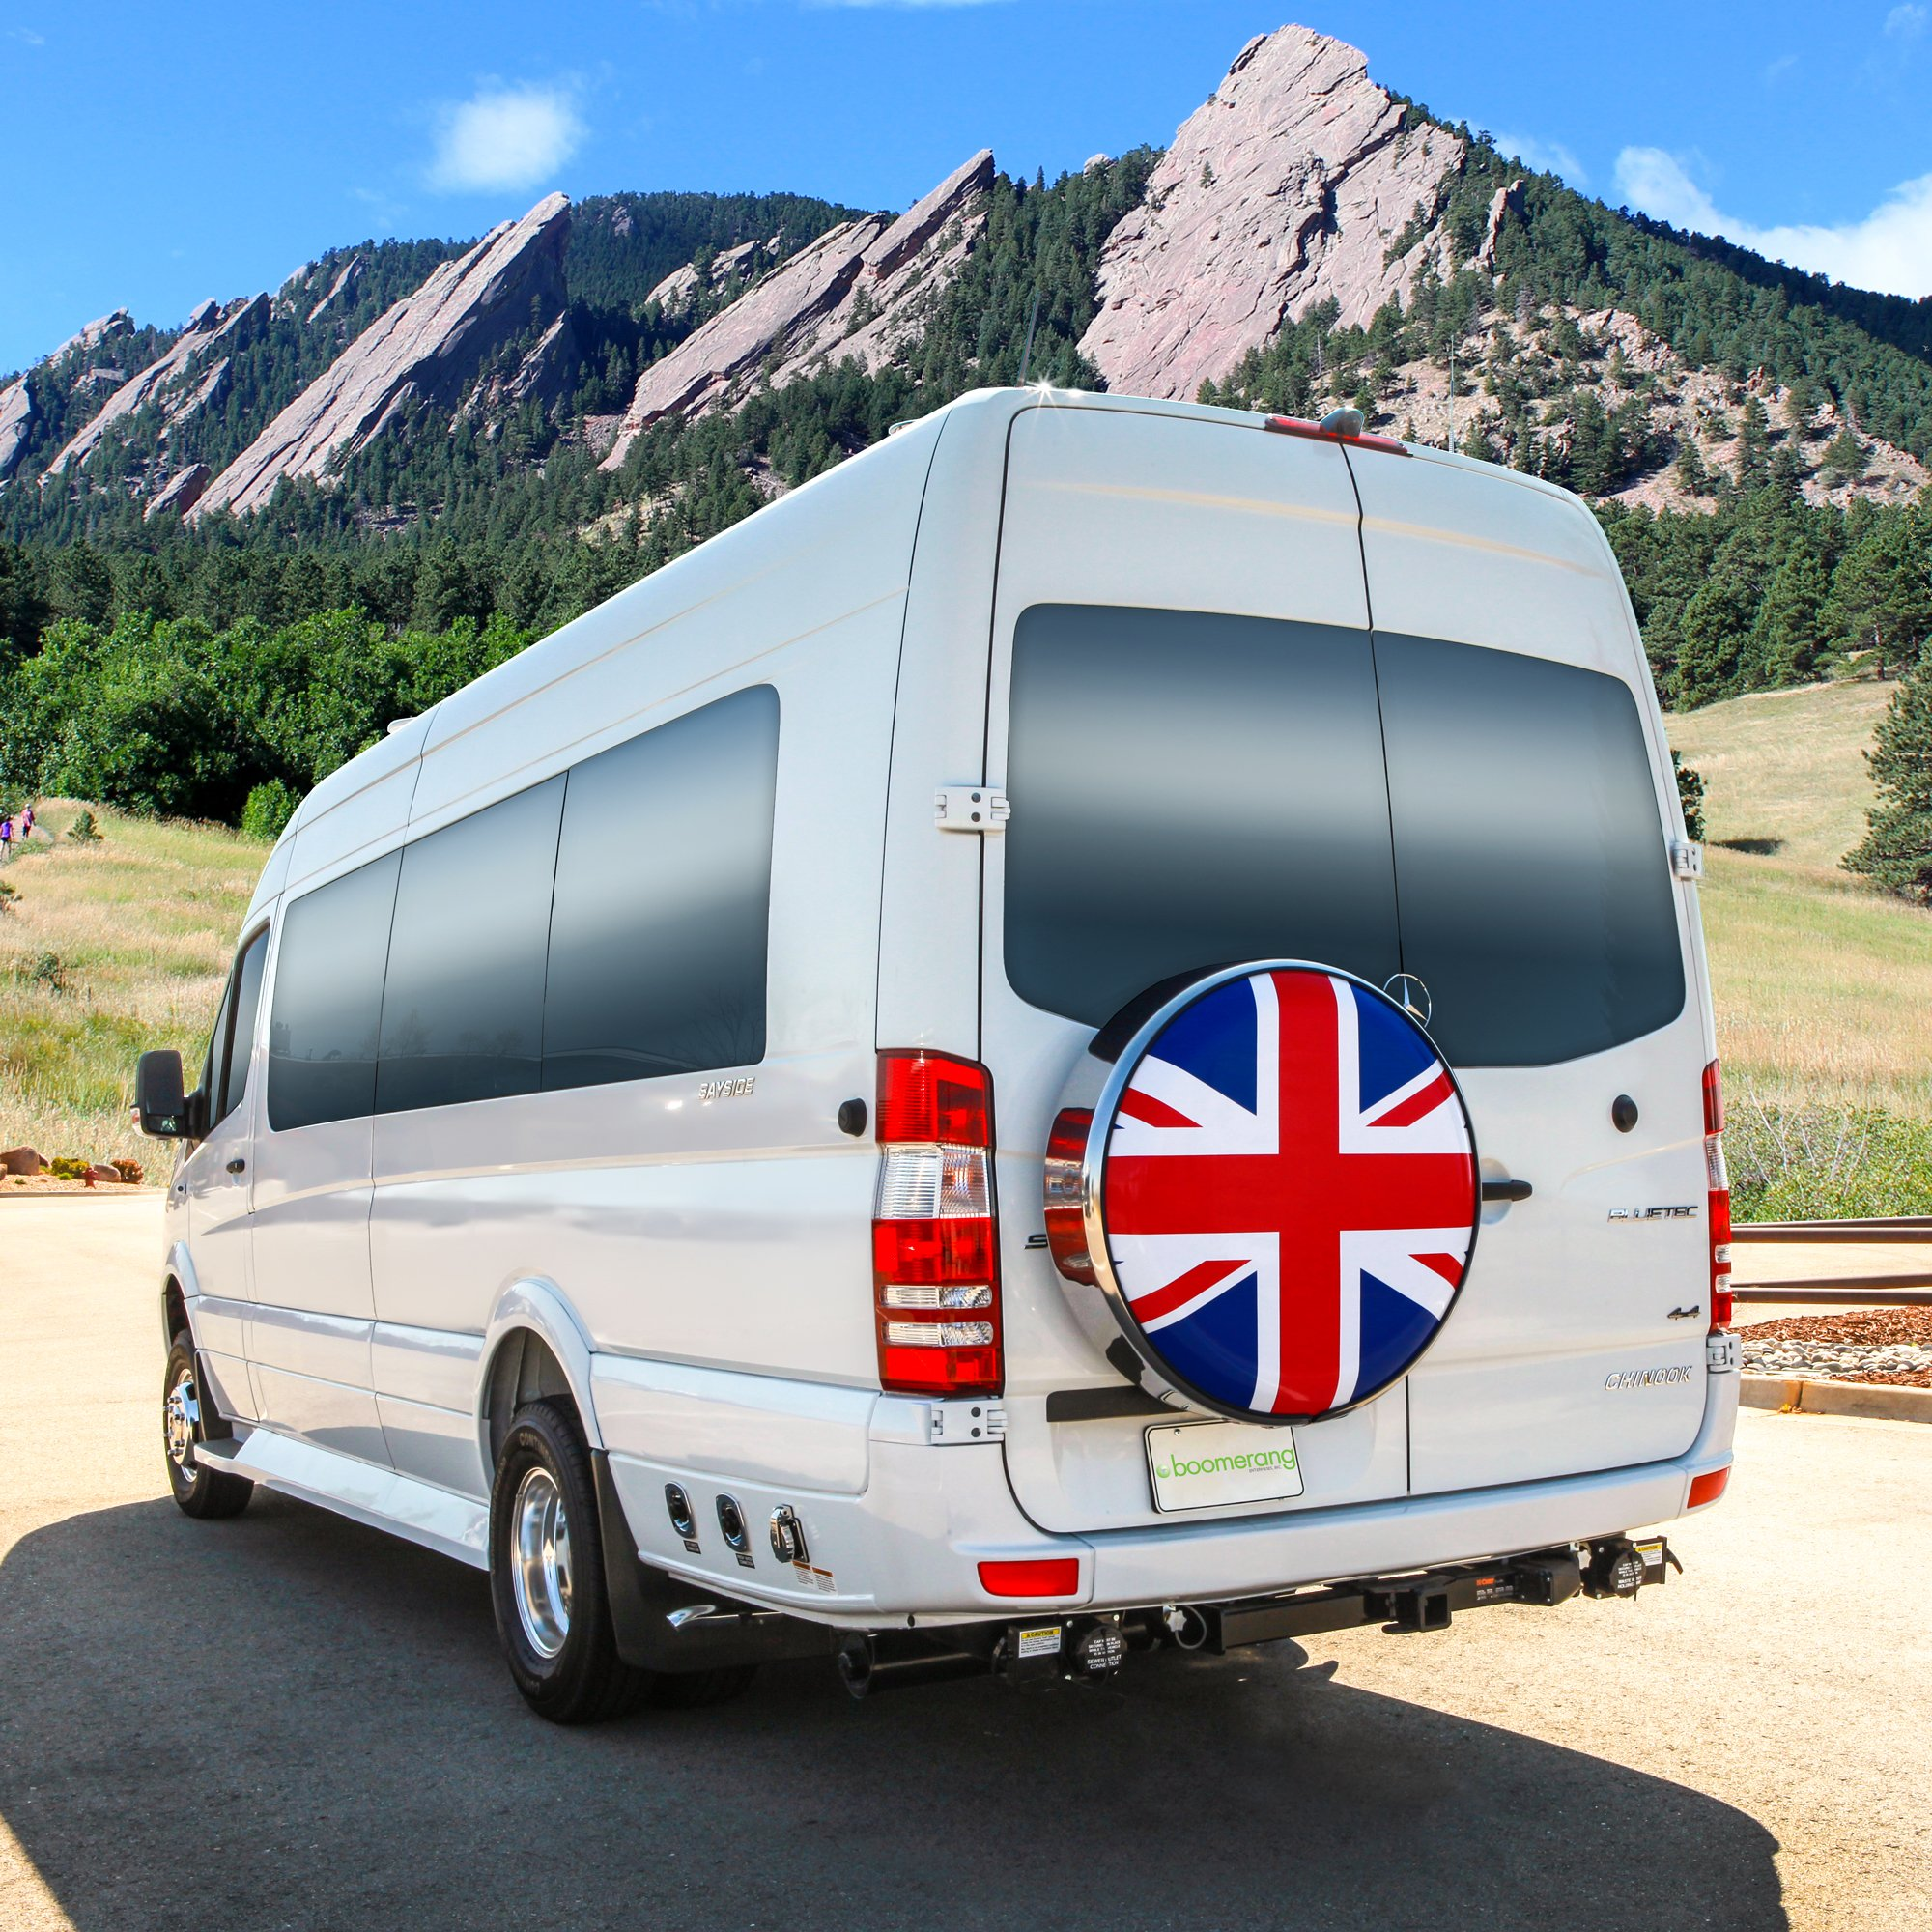 MasterSeries - Continental Tire Cover Kit (245/75R16 ) - (Molded Plastic Face & Polished Stainless Ring) - Union Jack Flag Print by Boomerang (Image #3)